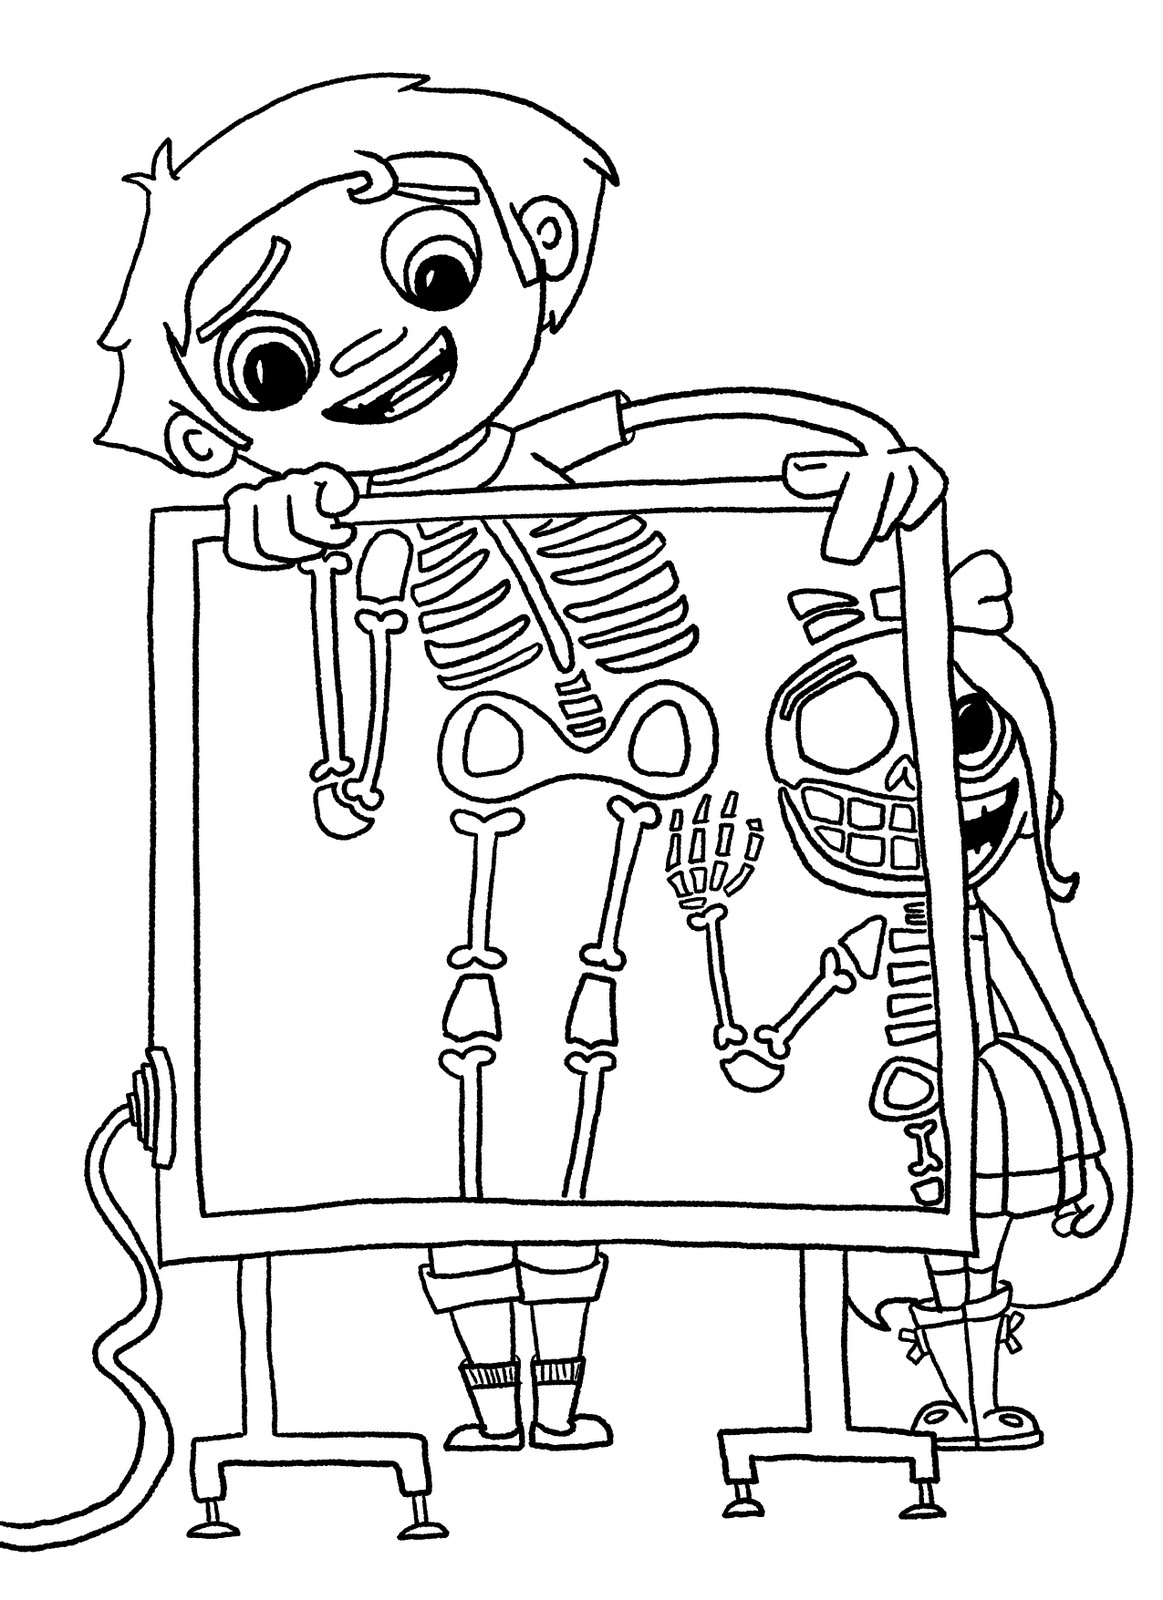 coloring pages x ray - radiology coloring pages coloring pages